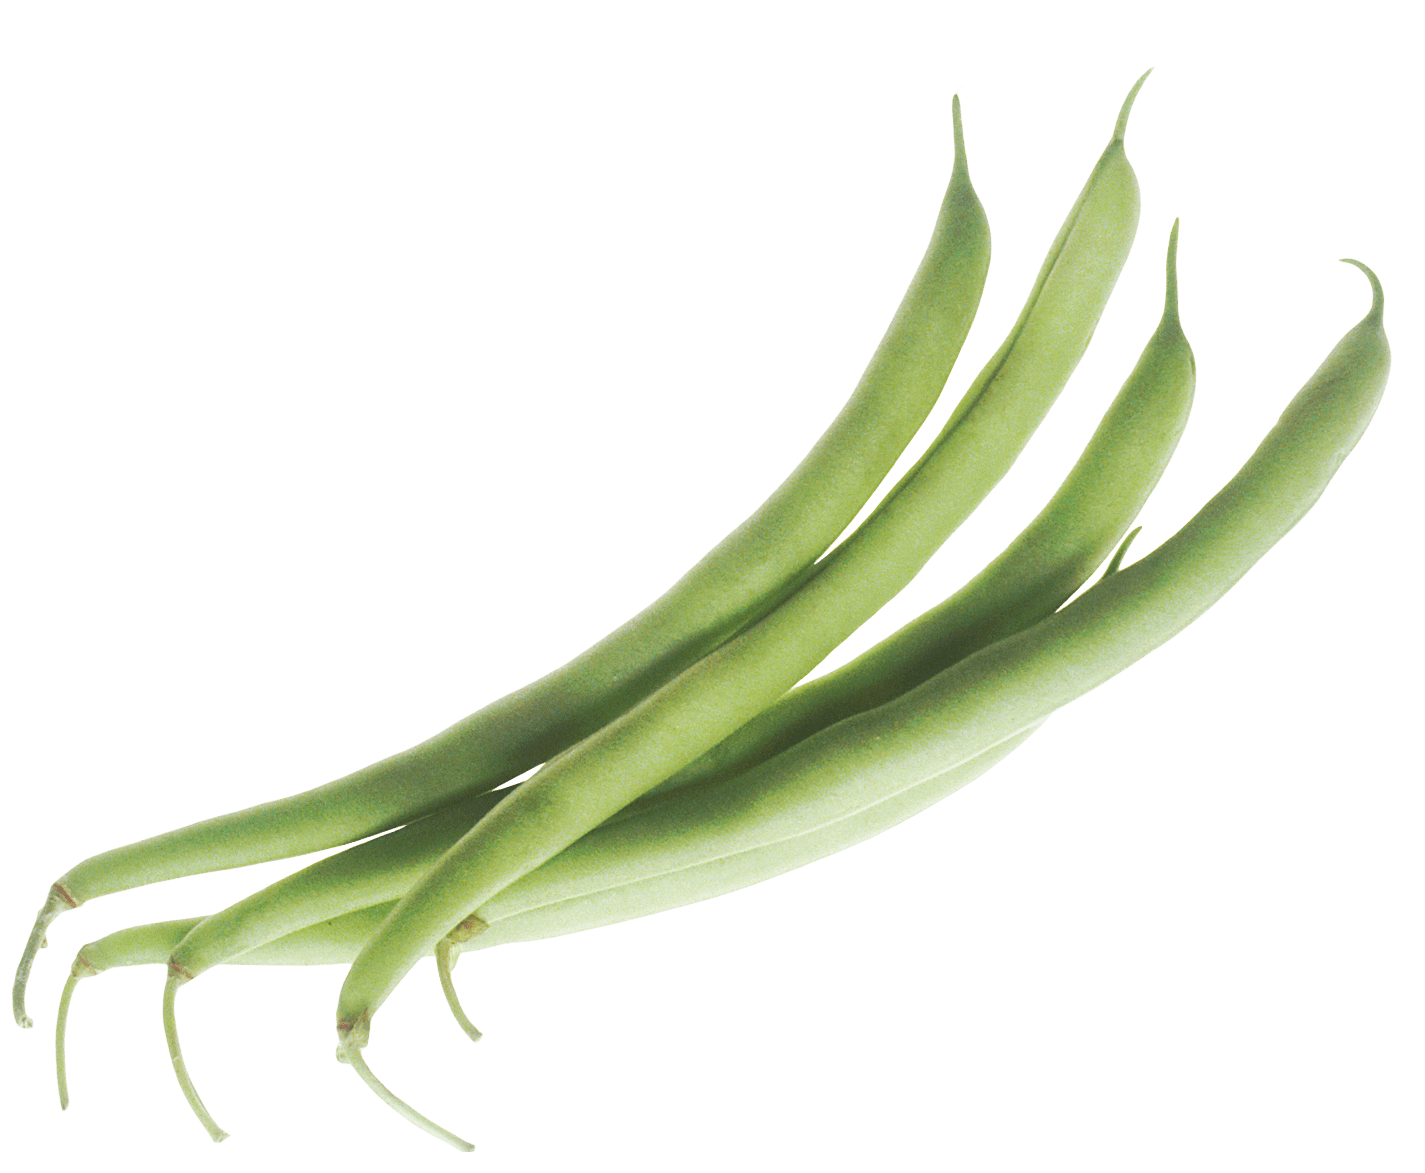 Bean clipart runner bean. Green beans transparent png